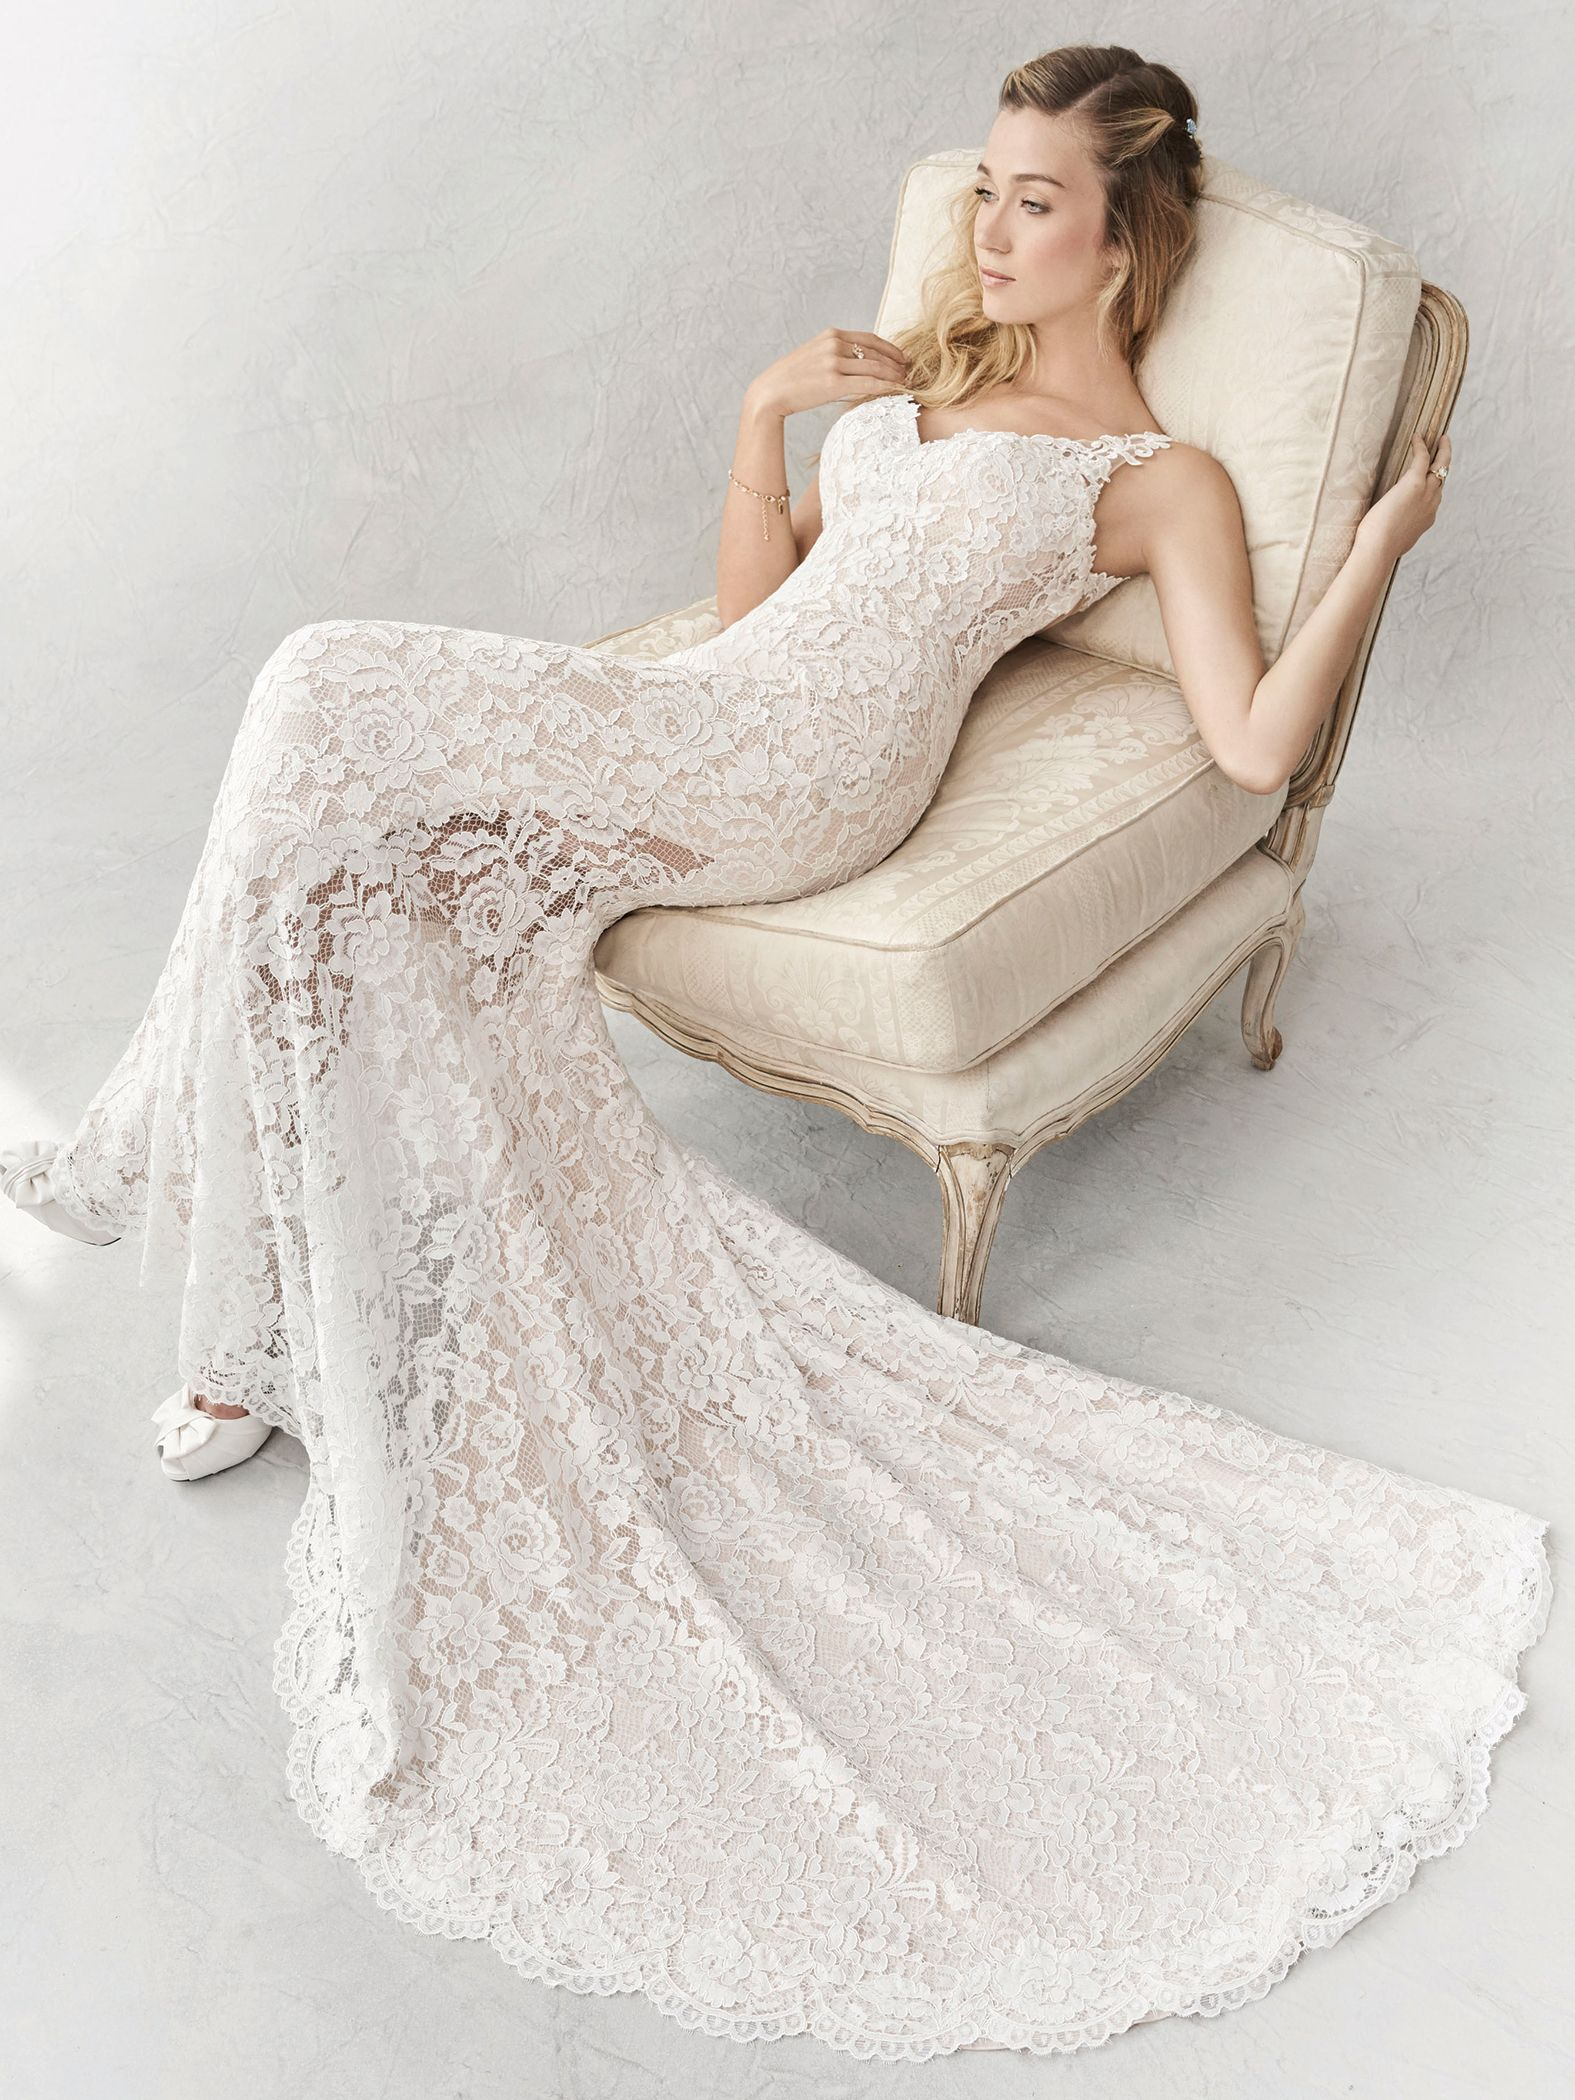 Ella Rosa Style Be356 Gorgeous Lace Gown With Illusion Inserts And Sheer Back Romantic Wedding Dress Brida Wedding Dresses Lace Bridal Gowns Ball Dresses